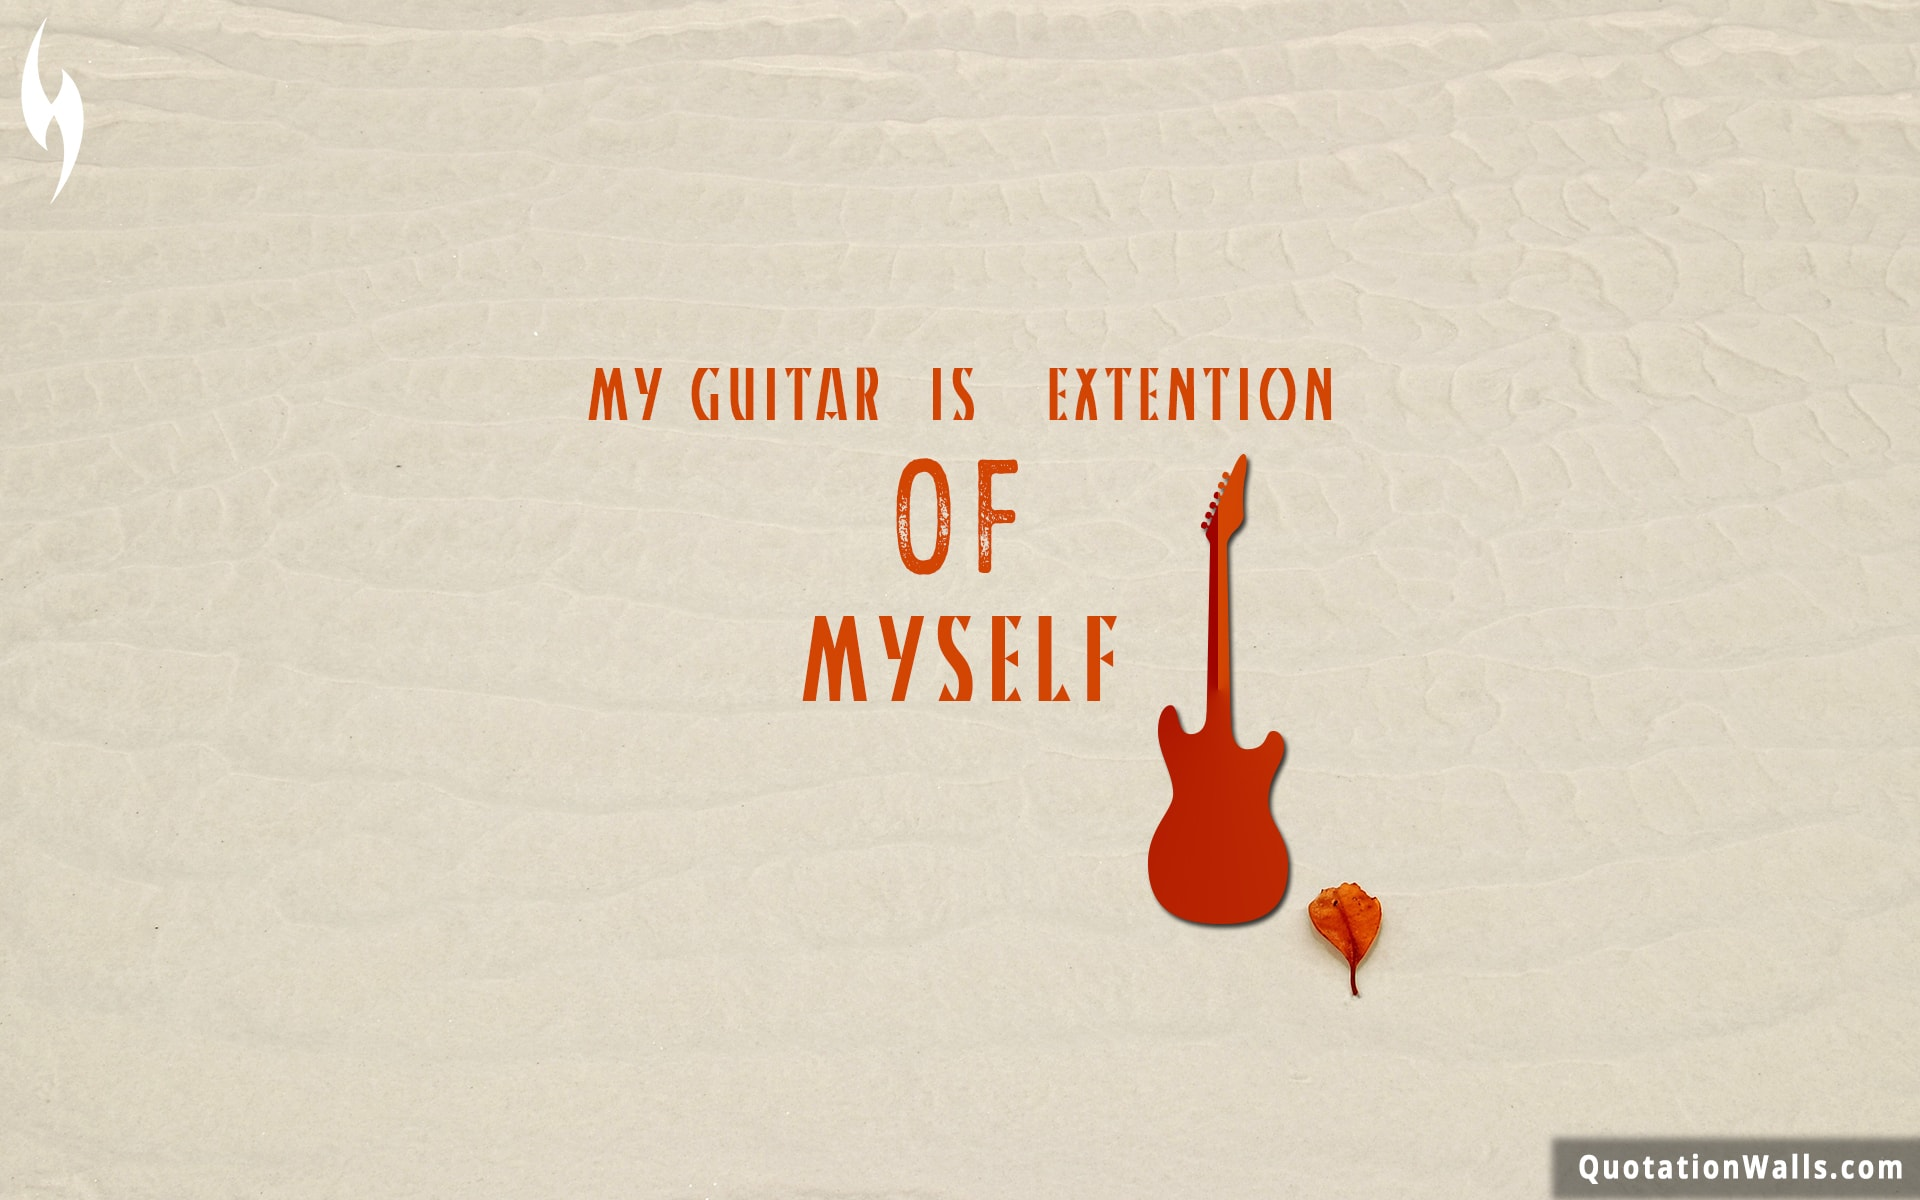 Guitar Is Extension Of Myself Wallpaper For Desktop